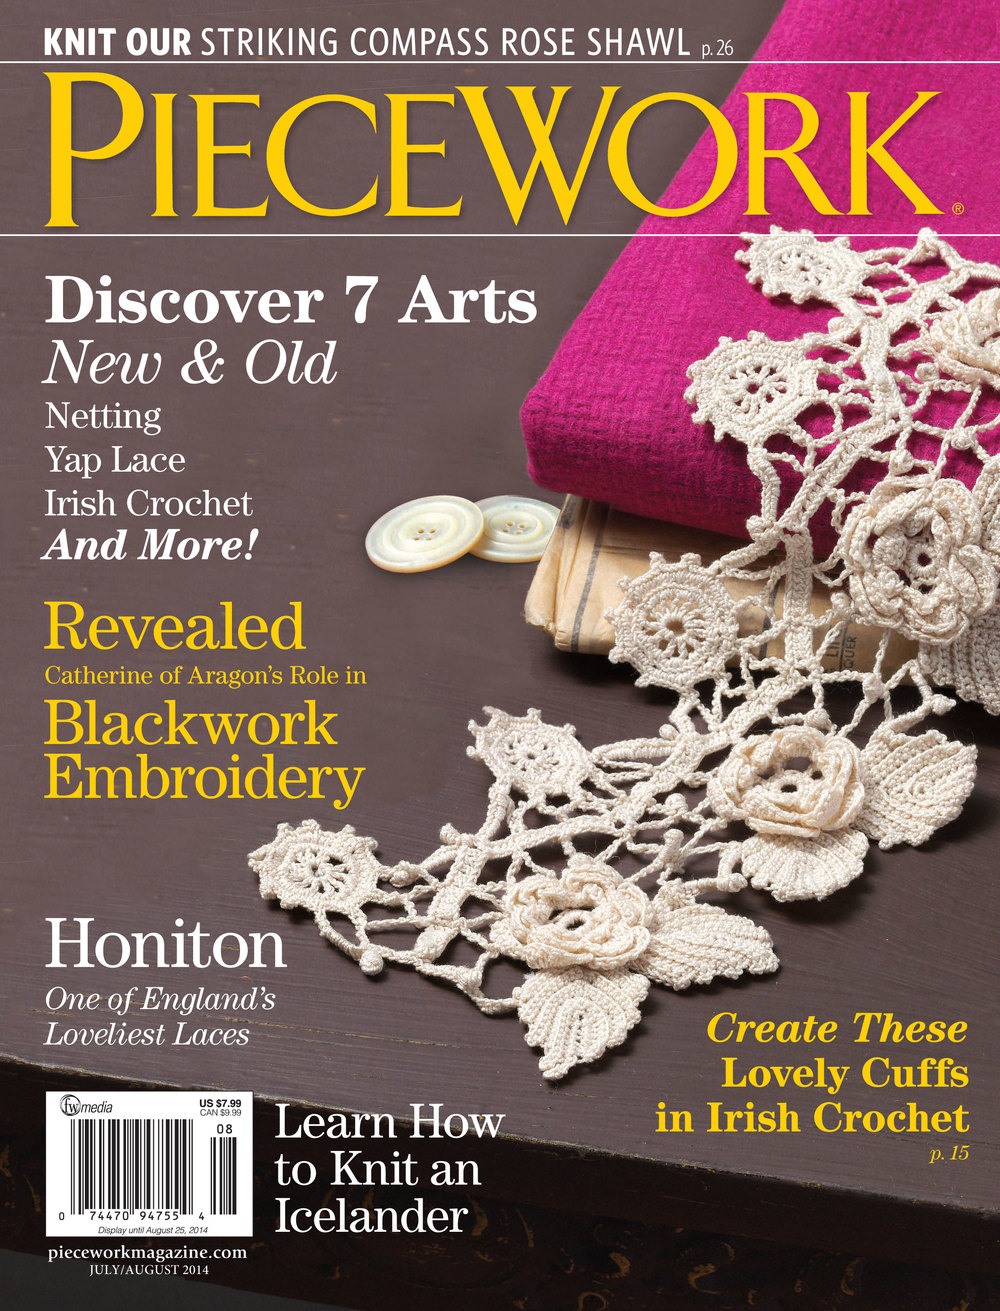 PieceWork July/Aug 2014 cover, my Irish Crochet cuffs